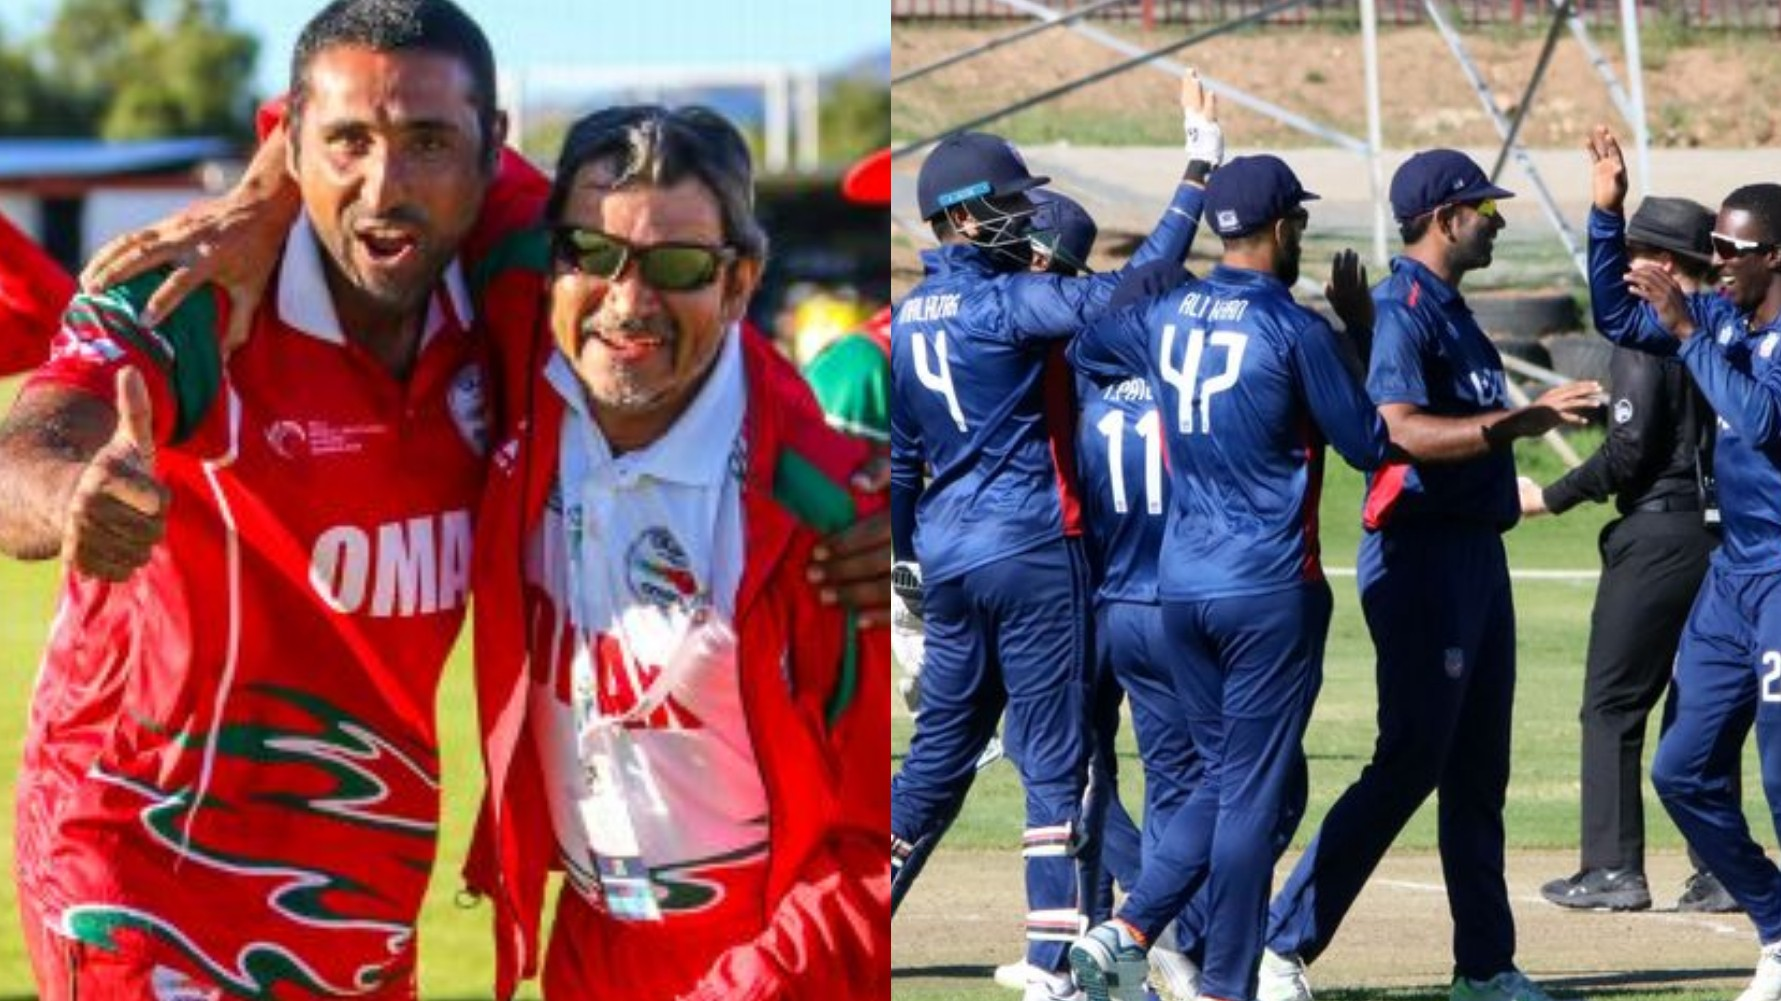 Oman and USA get ICC ODI Status and secure ICC Men's Cricket World Cup League 2 places